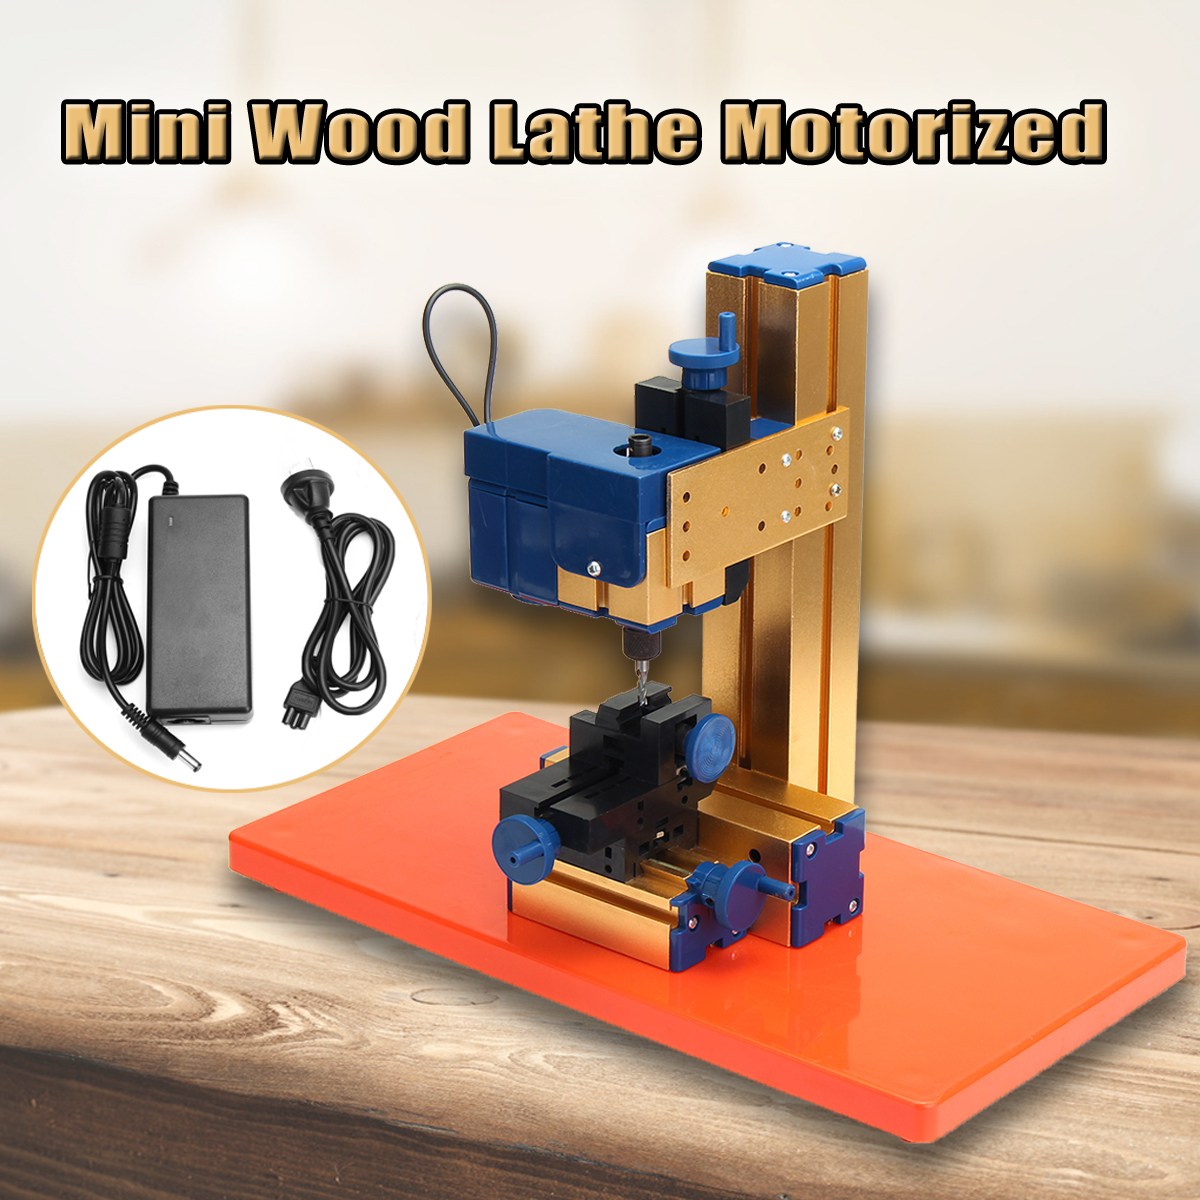 24W DC 12V 2A Mini Motorized Wood Lathe Woodworking Milling Machine Hobby DIY Woodworking Tool